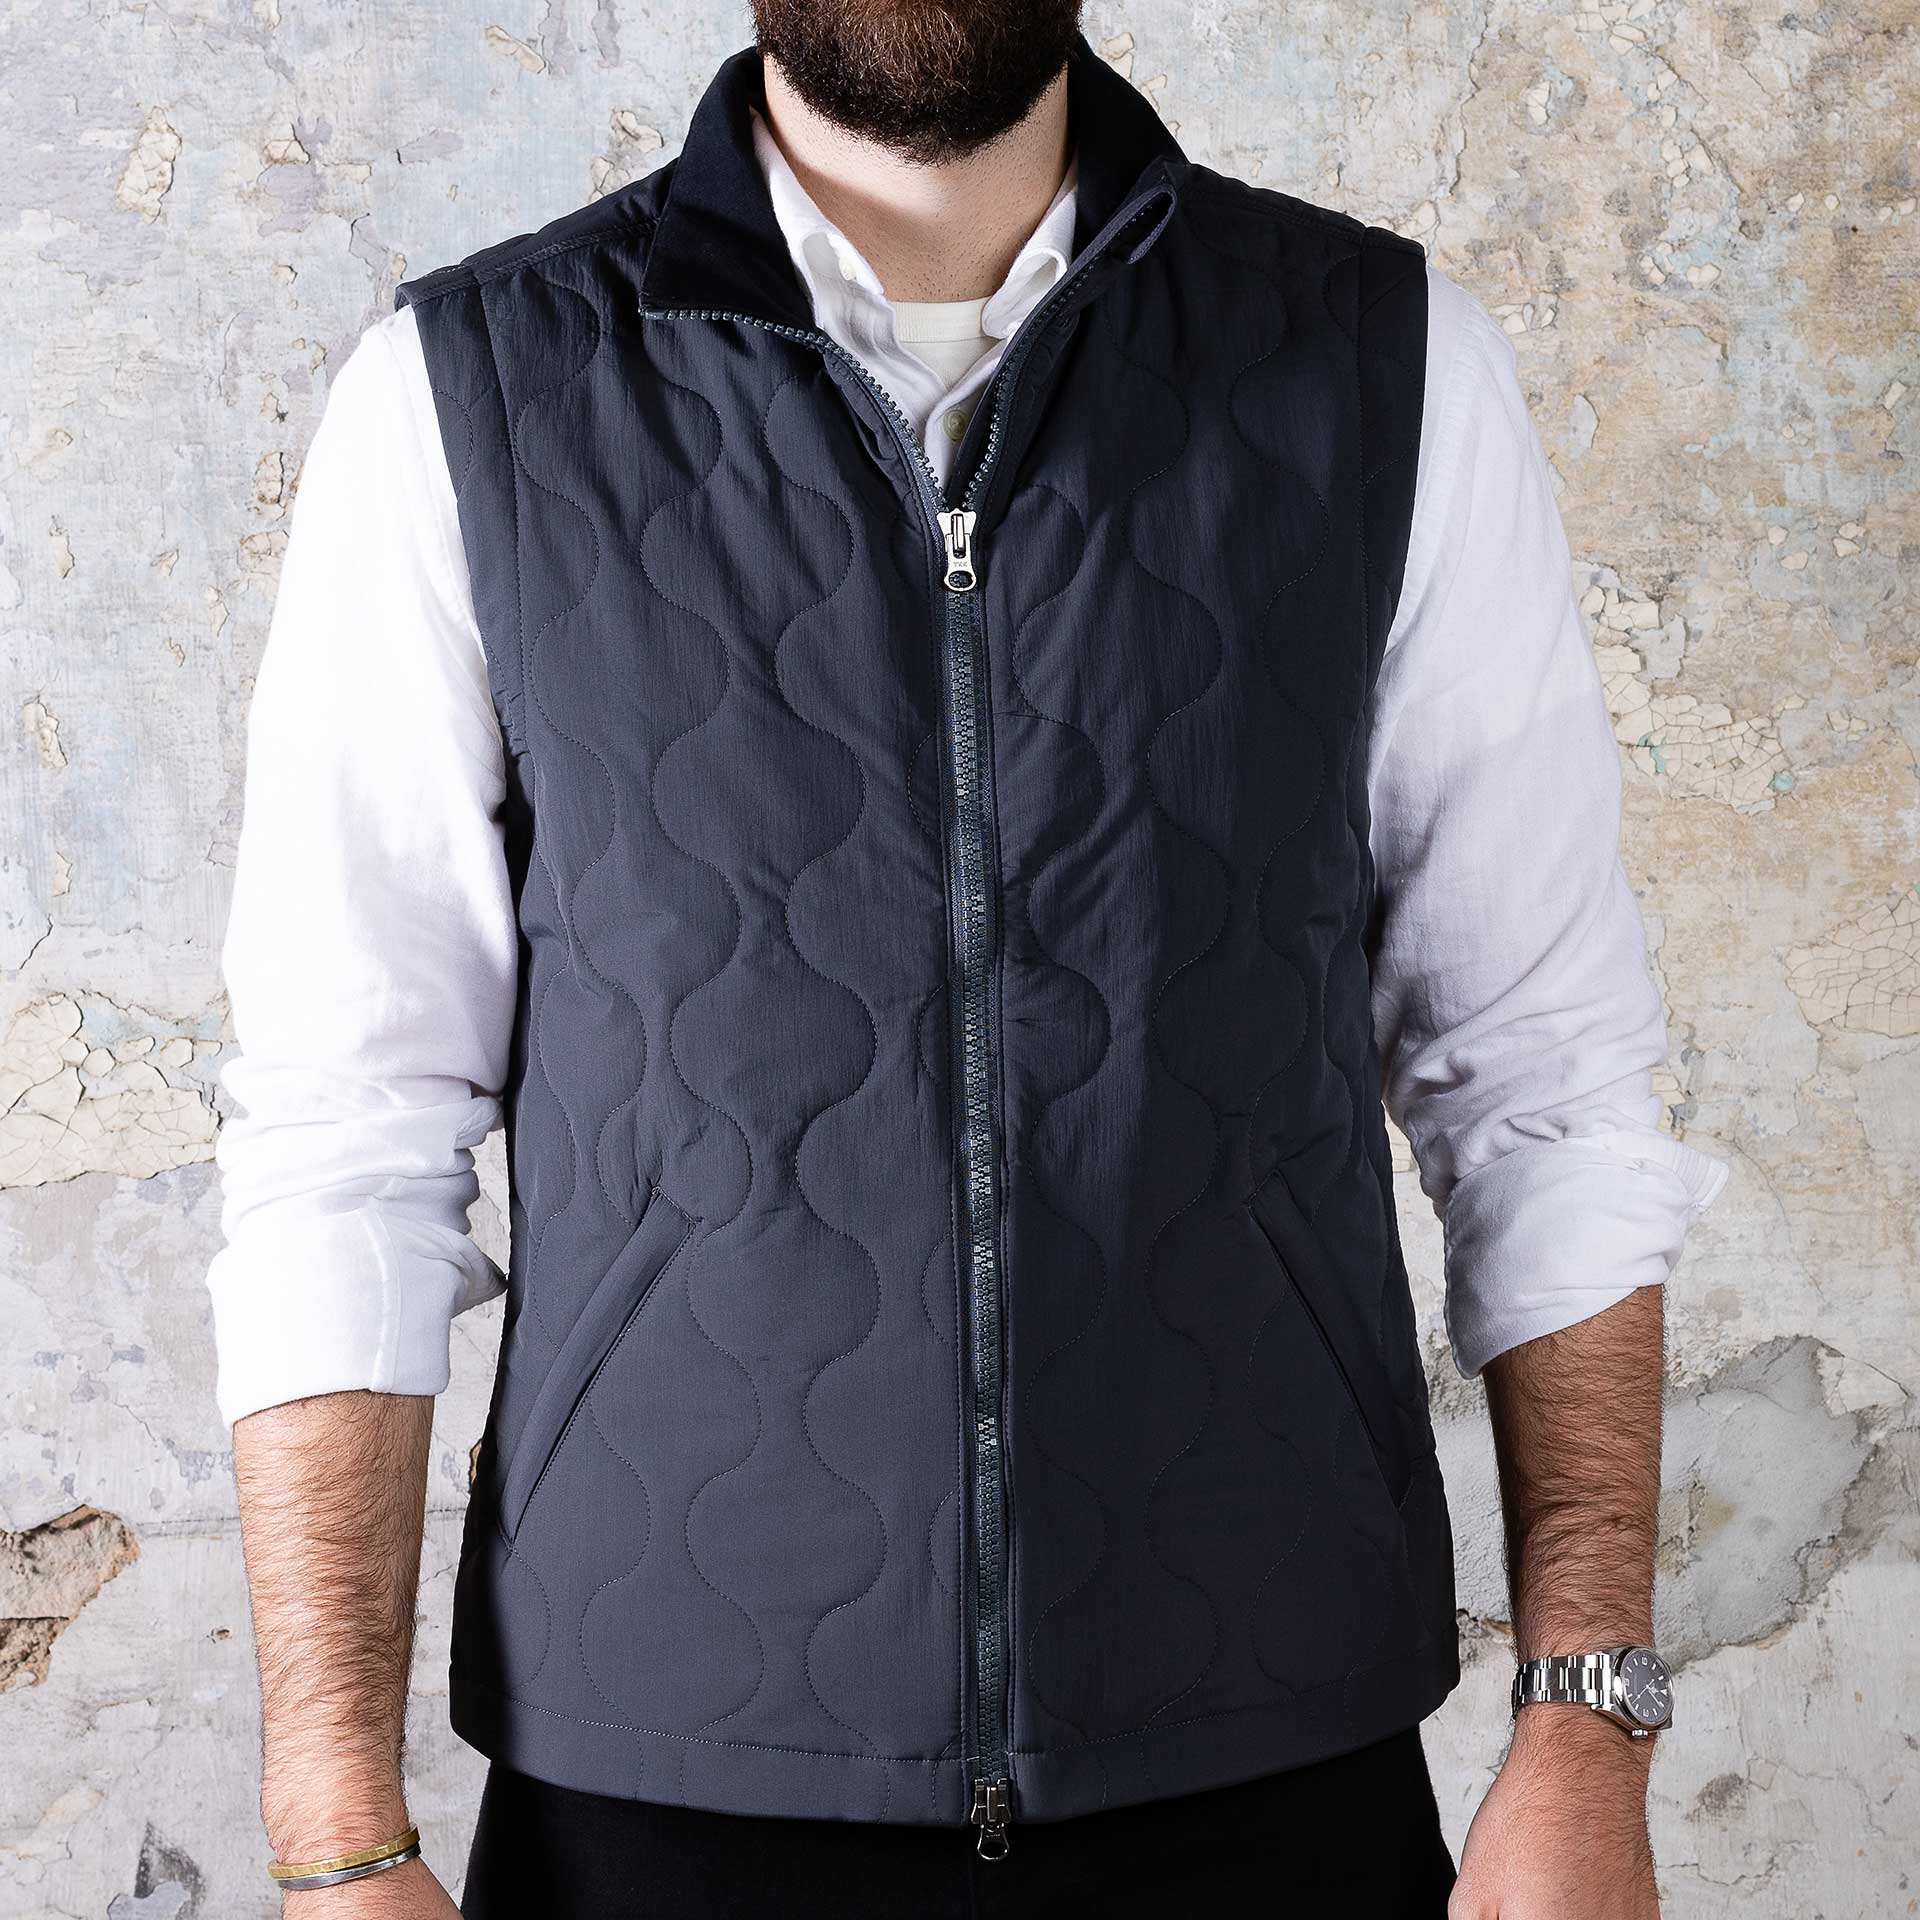 Taylor-Stitch-Vertical-Vest—Charcoal-onbody-